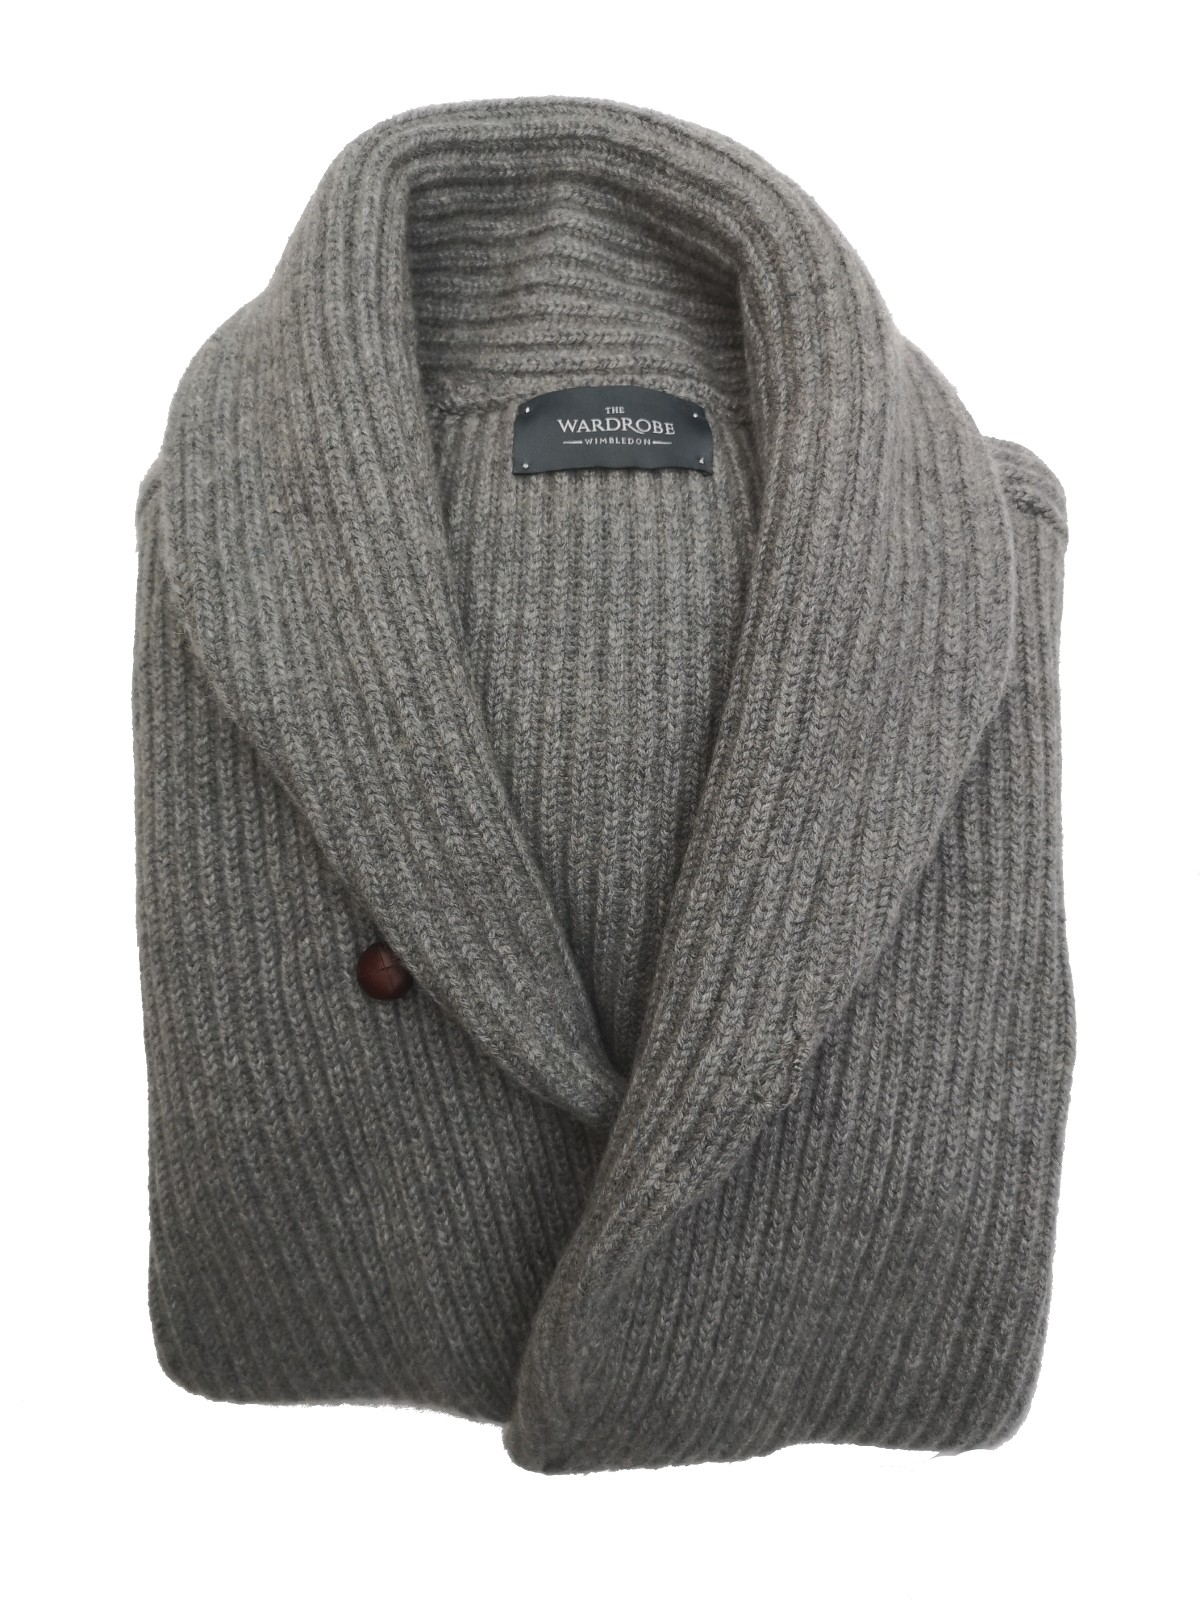 The Wardrobe Sweater Mid Grey Shawl Collar